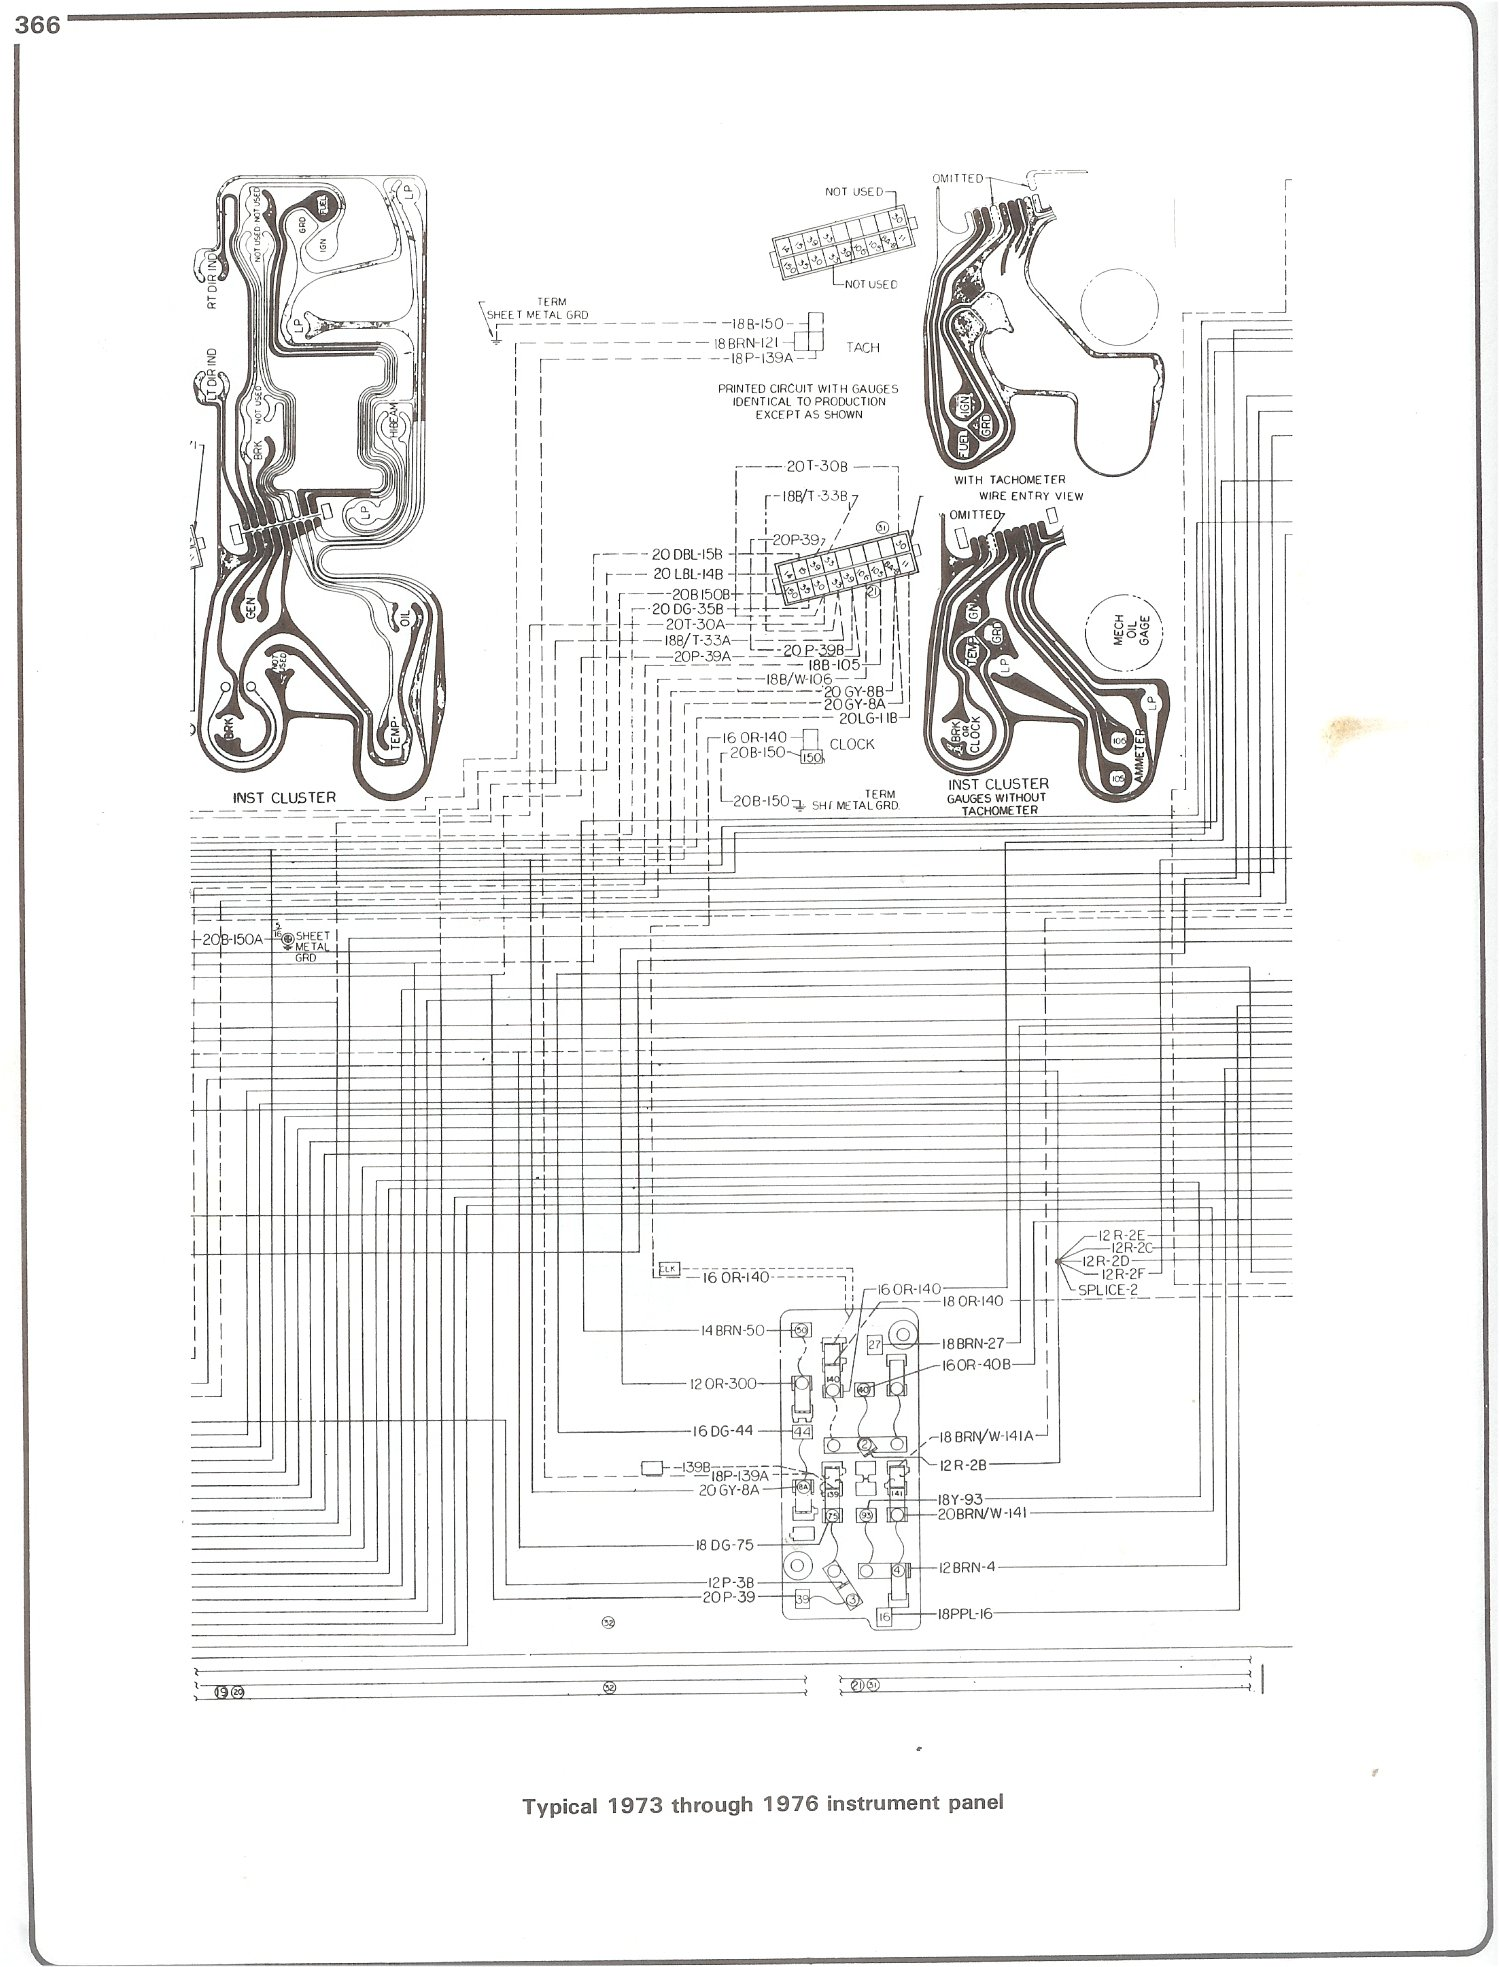 73 76_instrument complete 73 87 wiring diagrams 1978 chevy truck fuse box diagram at gsmx.co